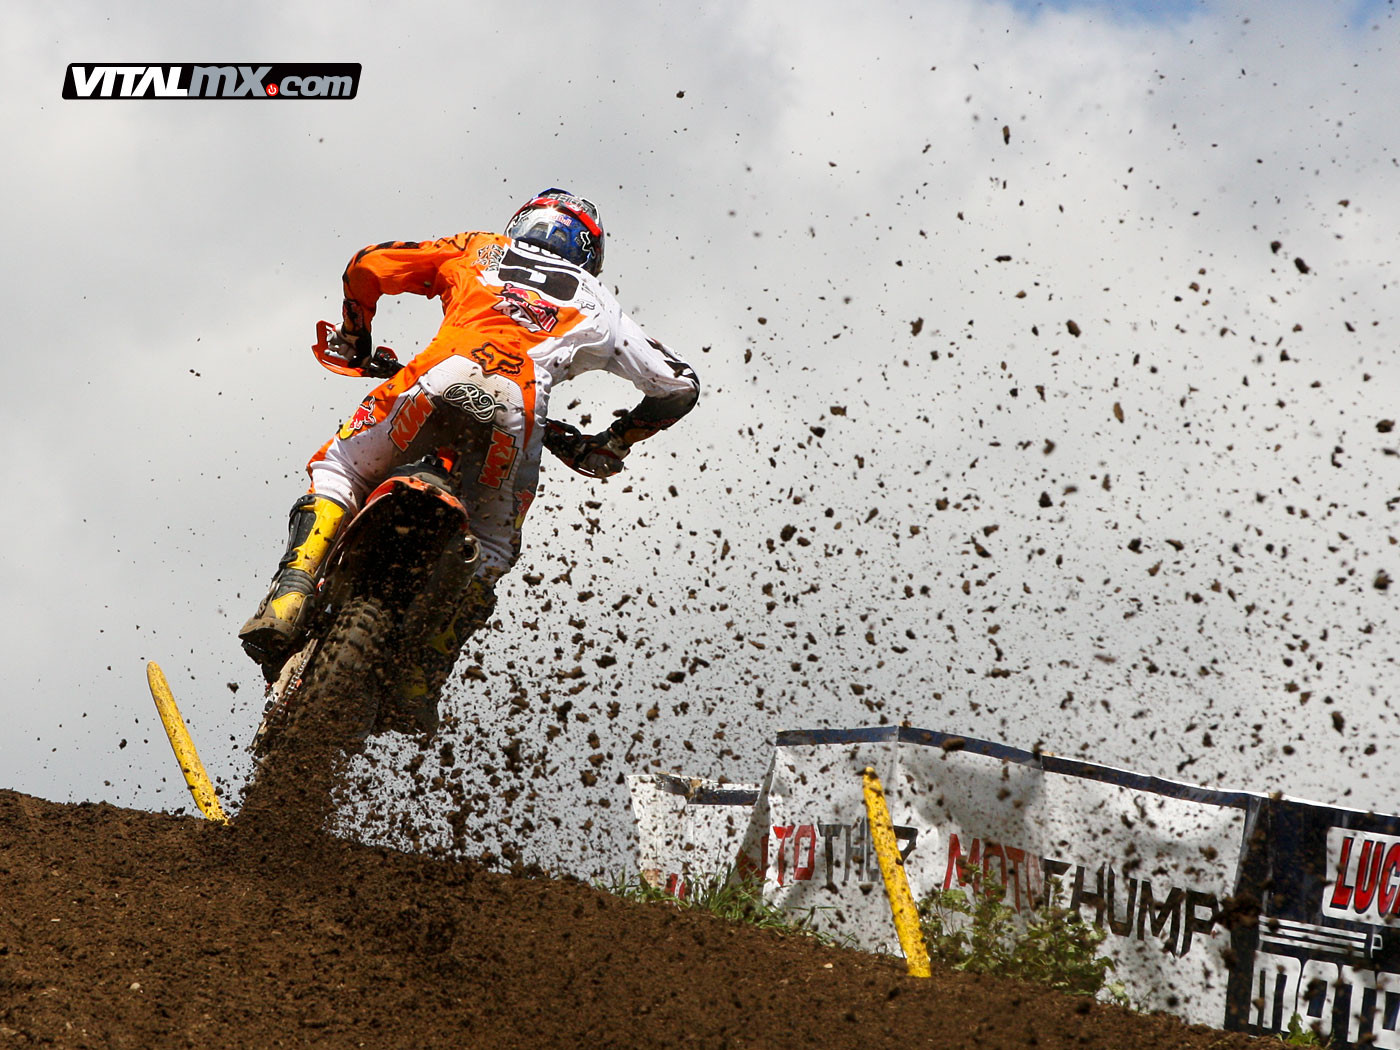 Pic o' The Day: Ryan Dungey - Pic o' The Day: Ryan Dungey - Motocross Pictures - Vital MX